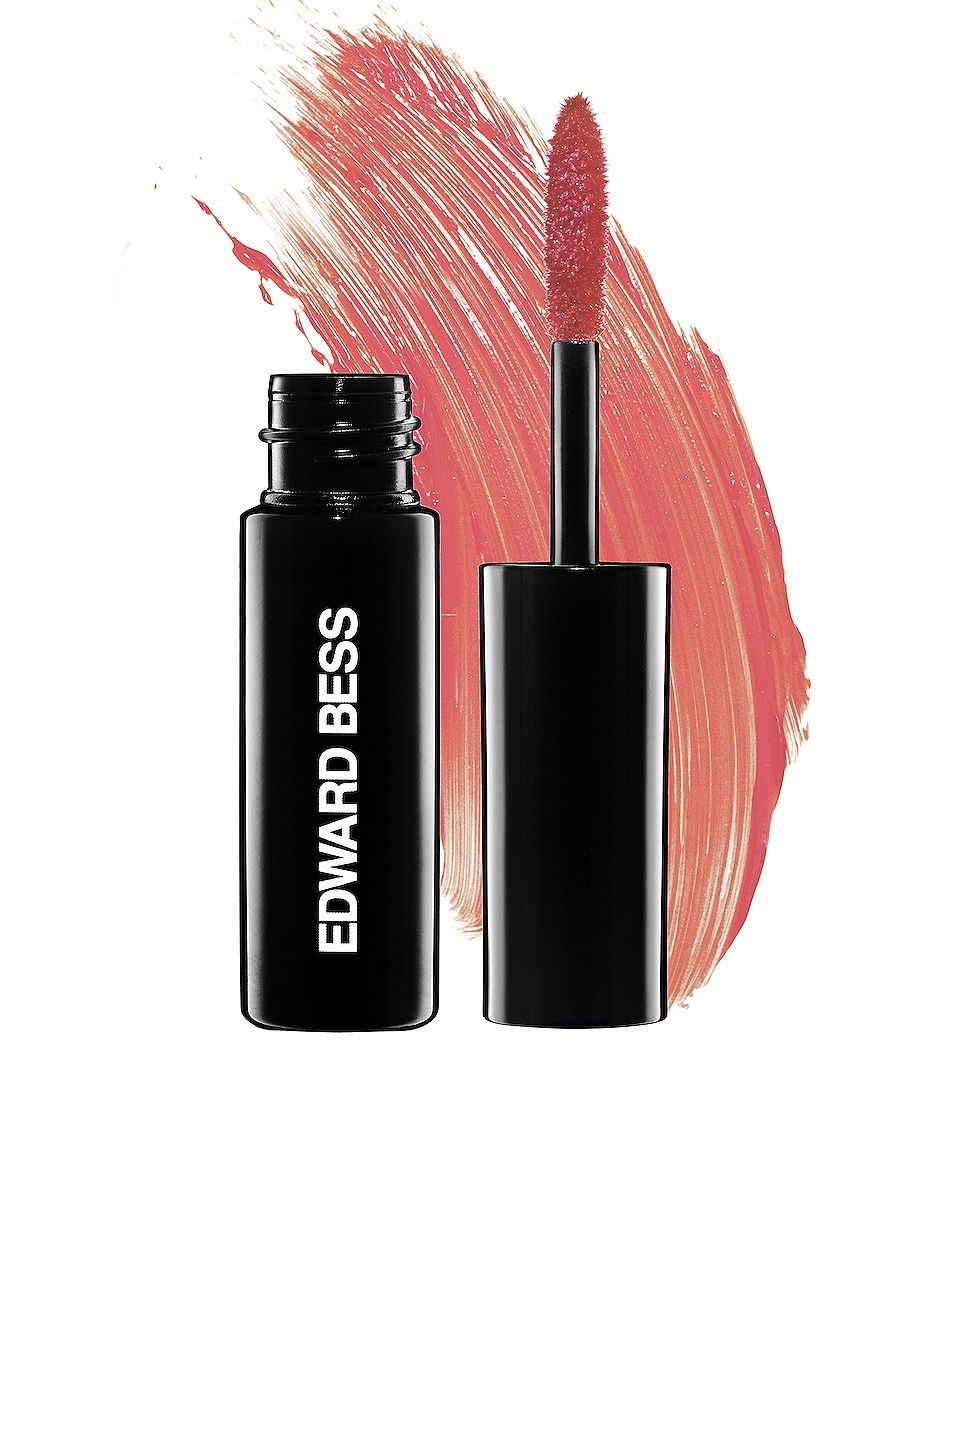 Edward Bess Water Colorist Long Wear Lip and Cheek Stain in Nude Spice